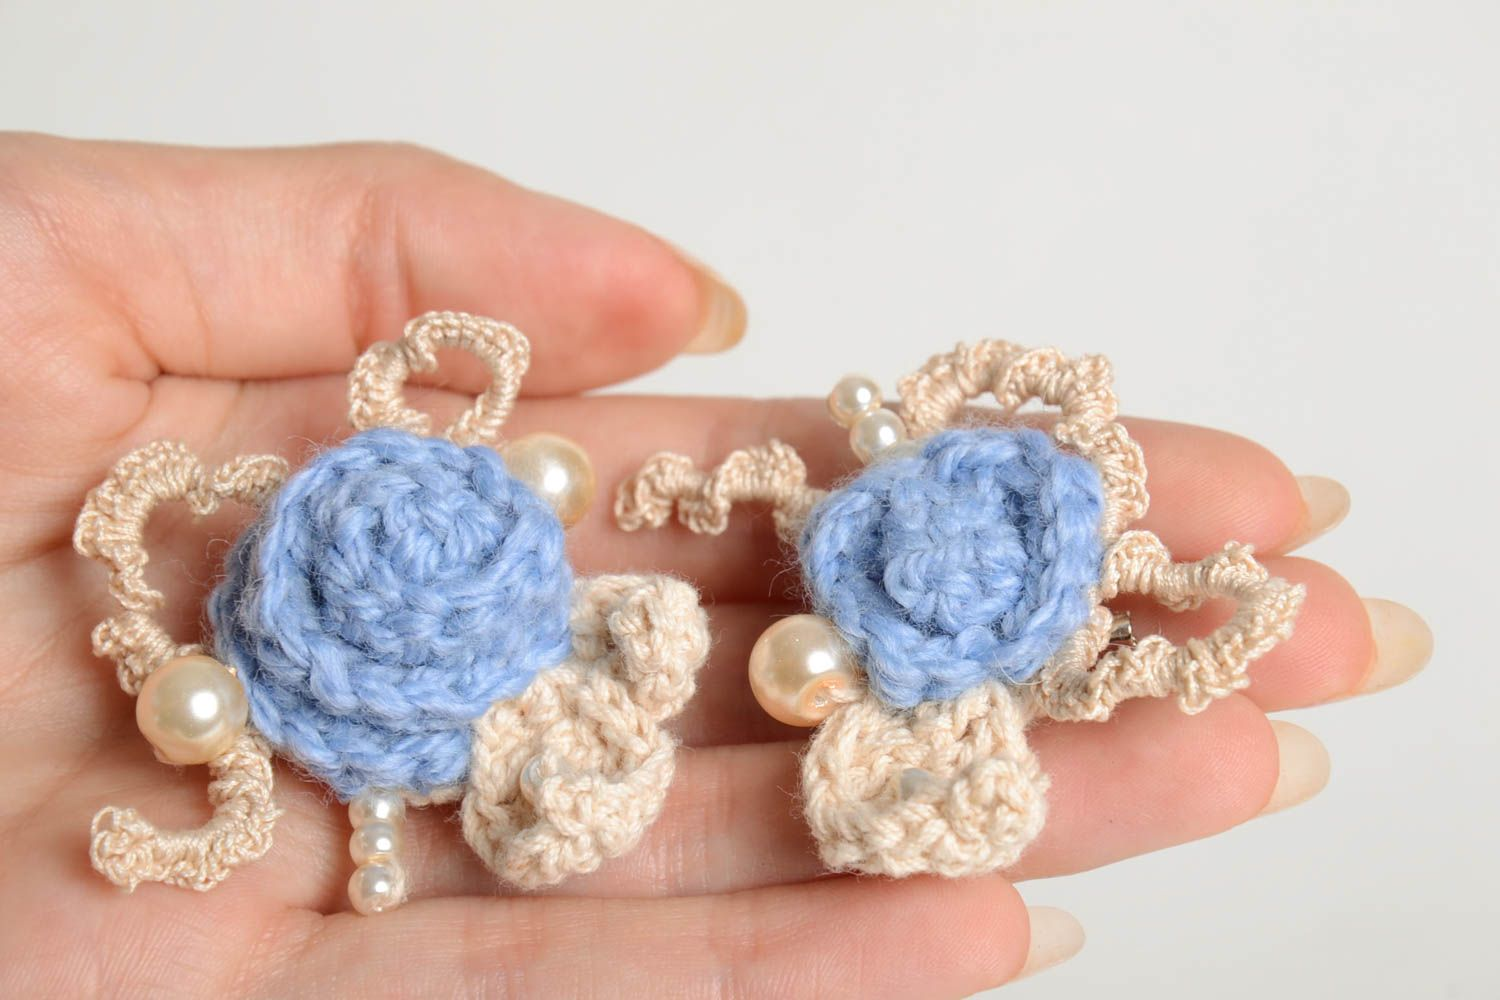 Fabric brooch handmade crocheted brooch textile brooches fashion accessories photo 4